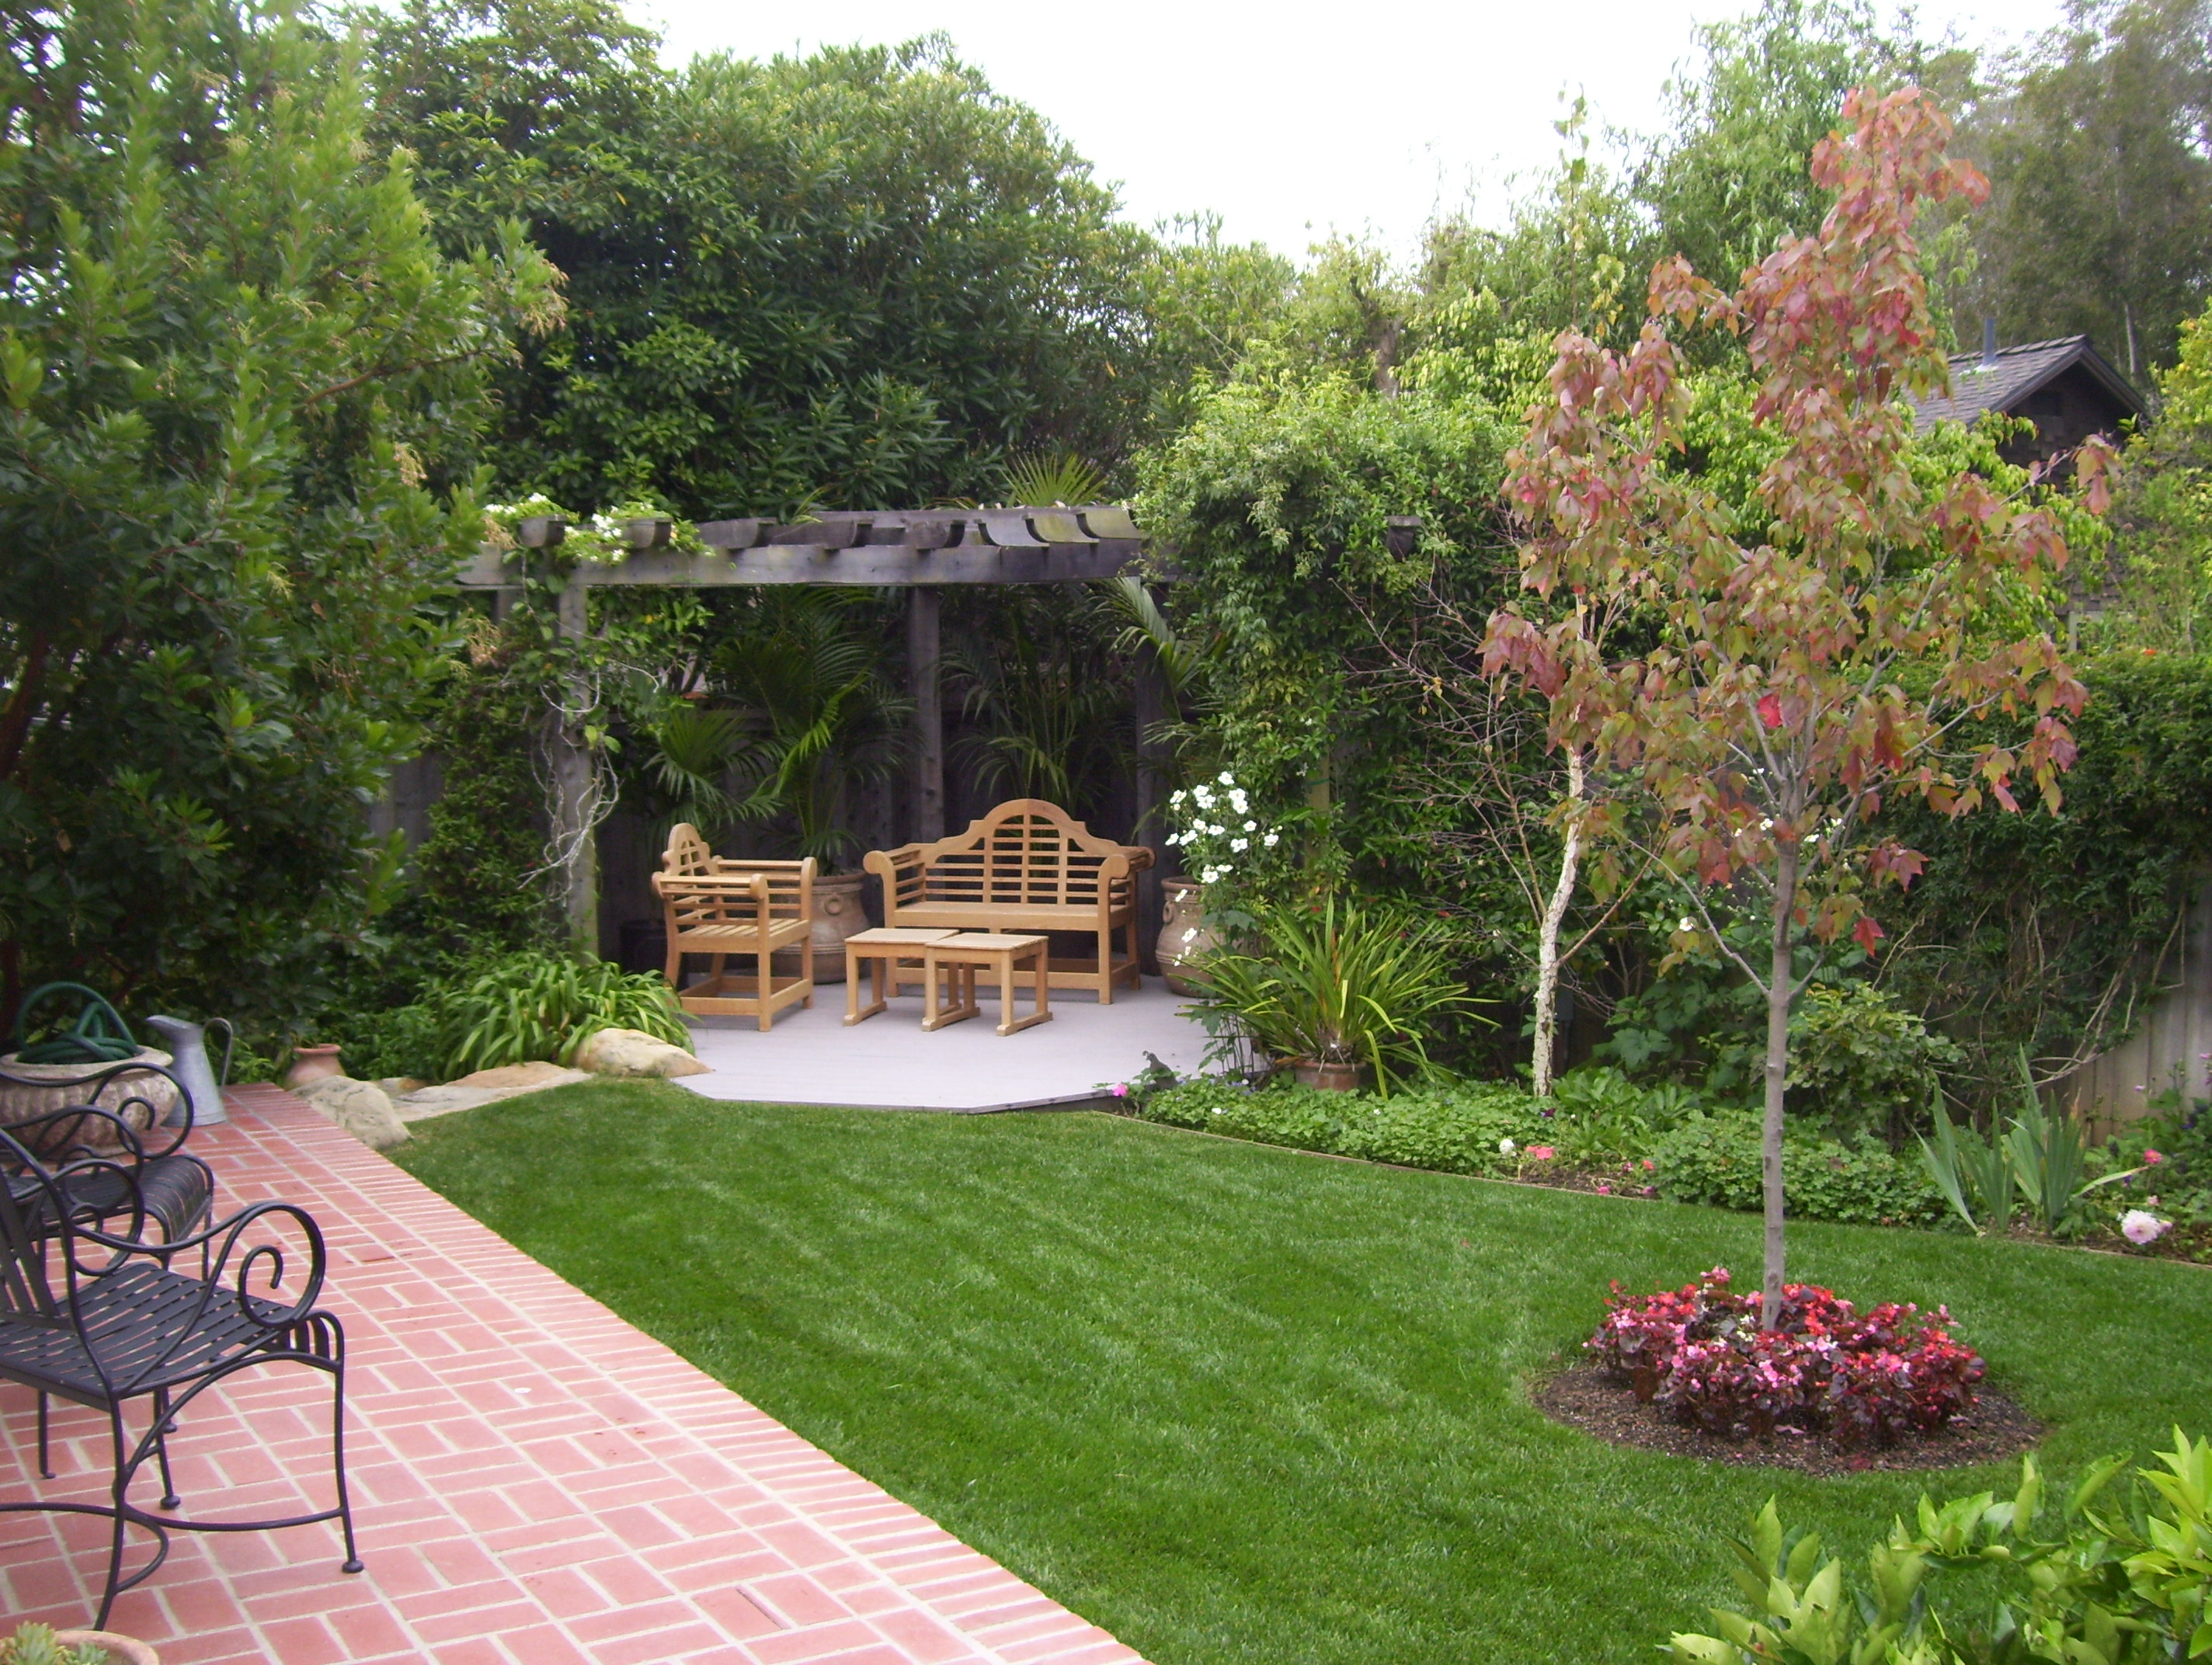 Landscaping Yard Photos : Backyard landscaping ideas santa barbara down to earth landscapes